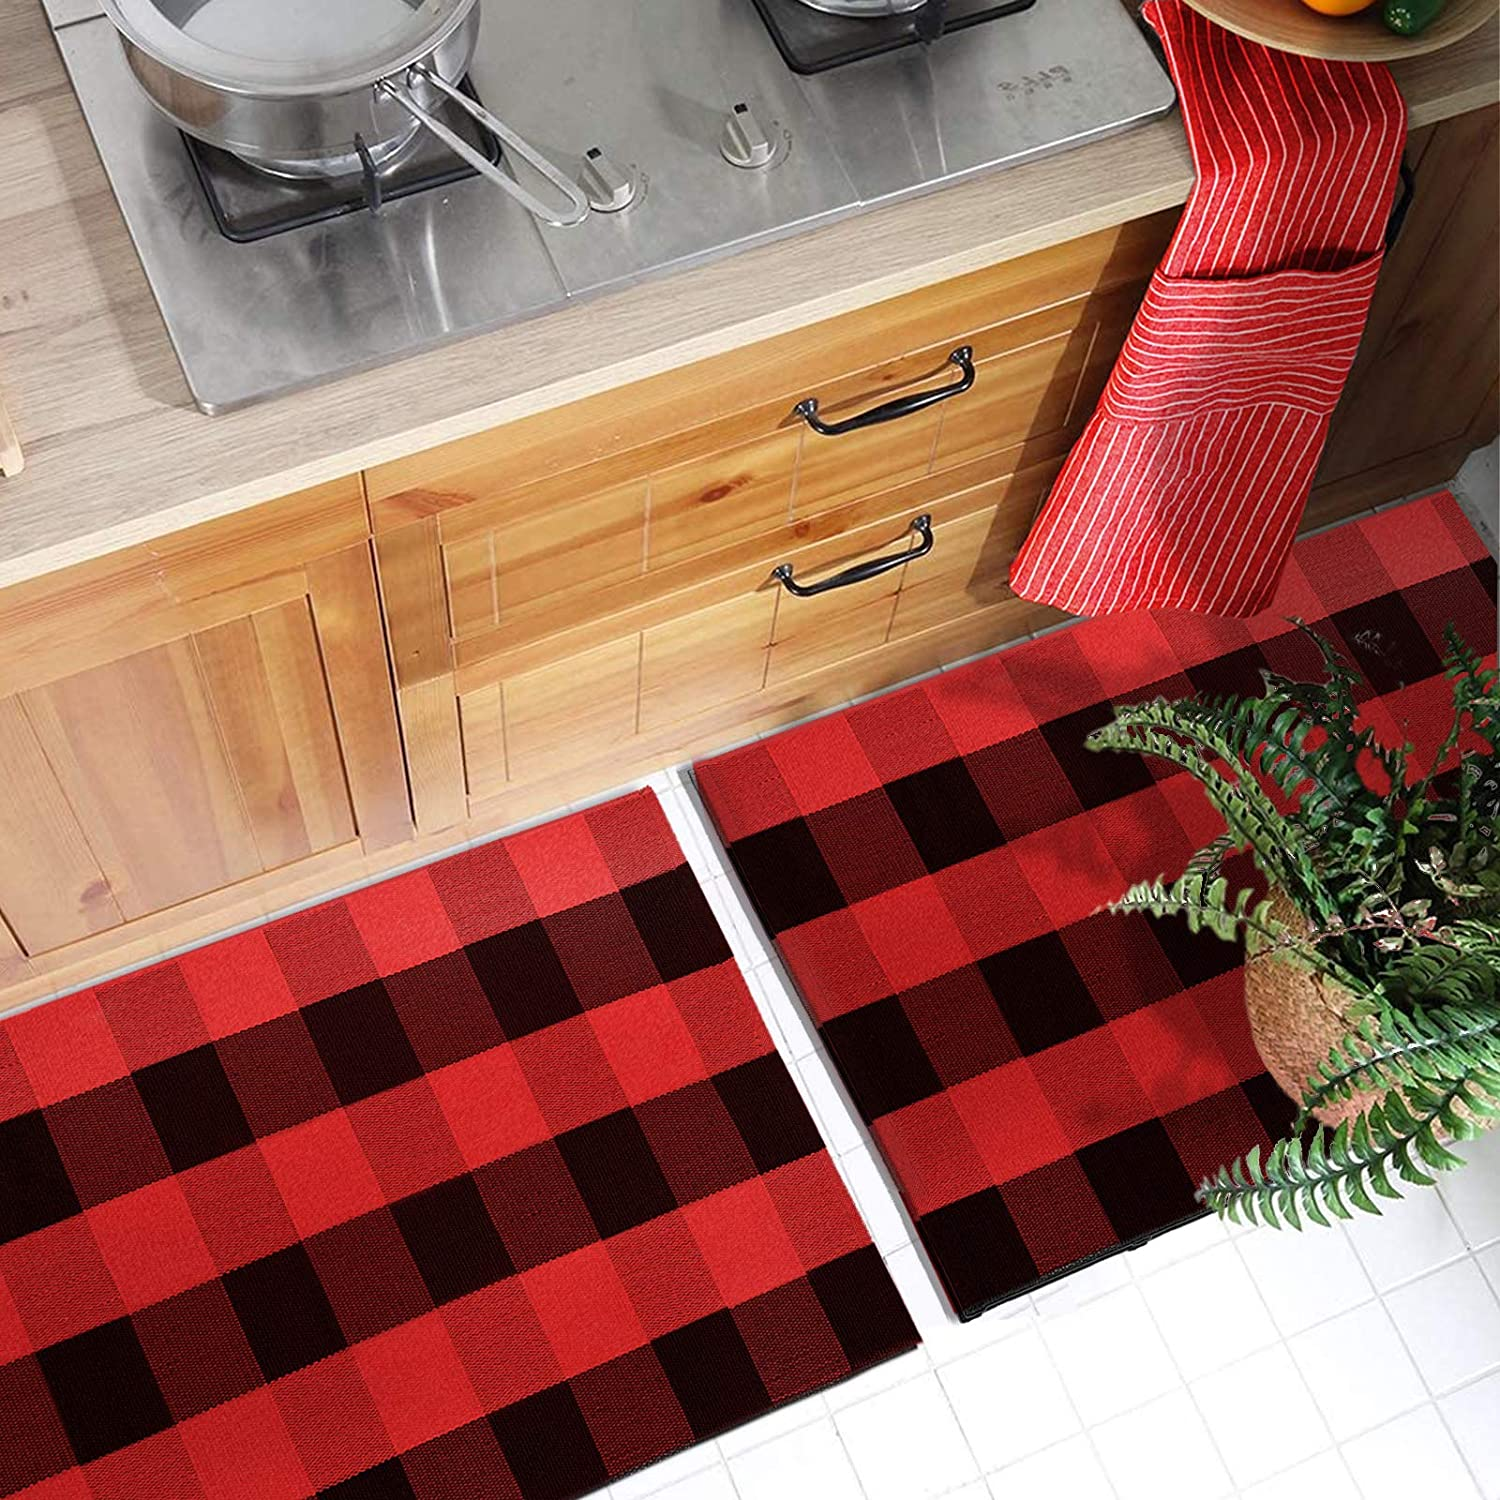 Buffalo Plaid Area Rug, 17.7 x 27.5 inch 2 Pack Kitchen Rug Cotton Outdoor Mat for Porch Bathroom Carpet Living Room Indoor Doormat , Black and Red